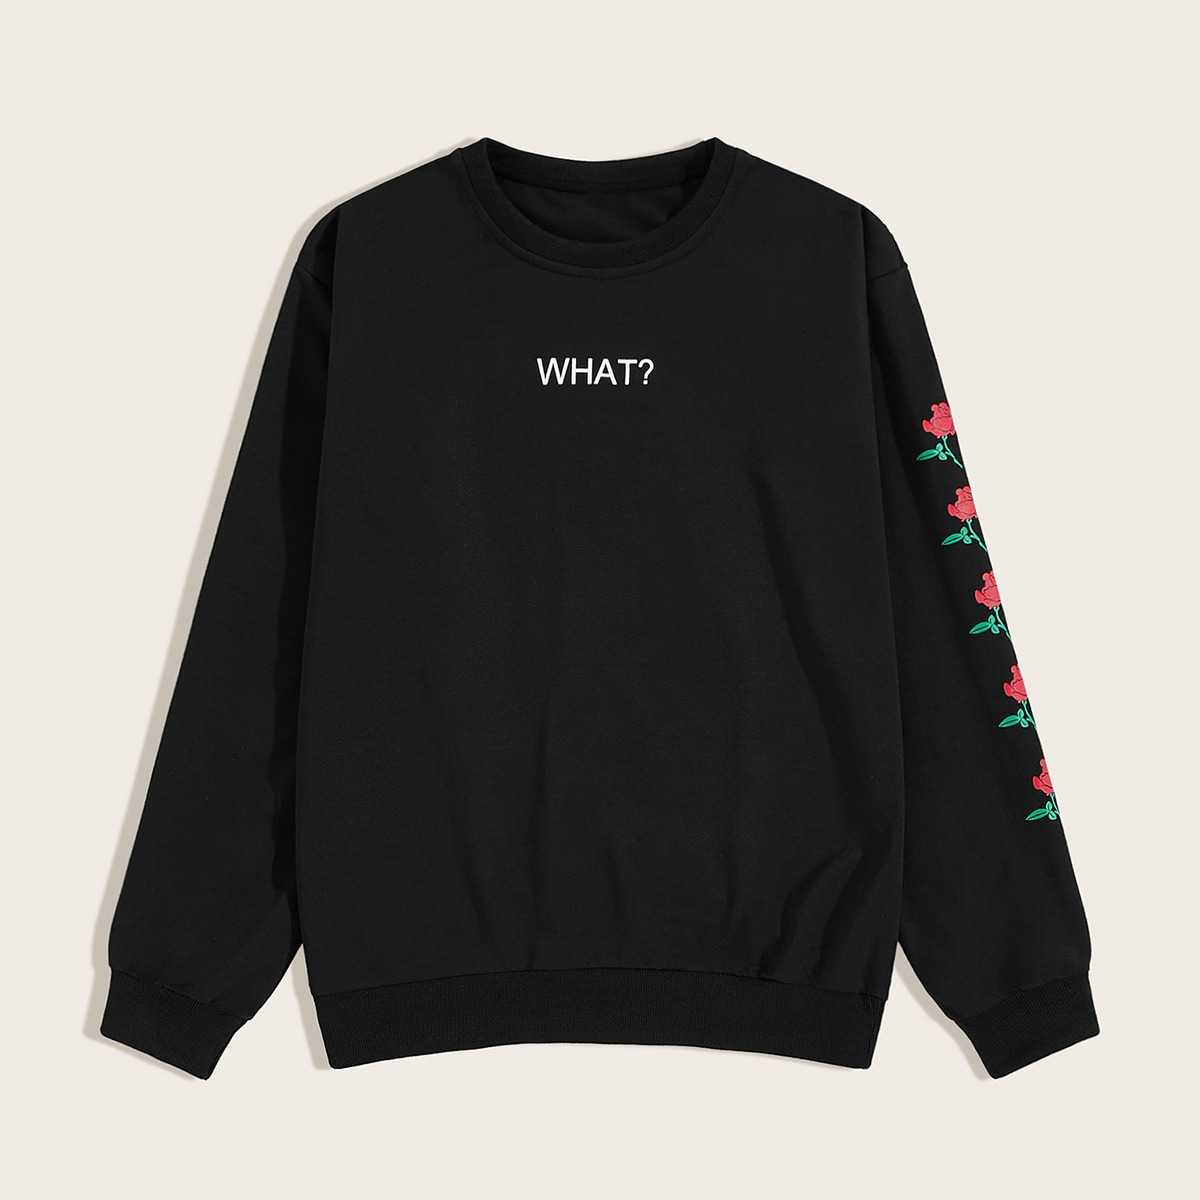 Guys Letter & Floral Print Sweatshirt in Black by ROMWE on GOOFASH